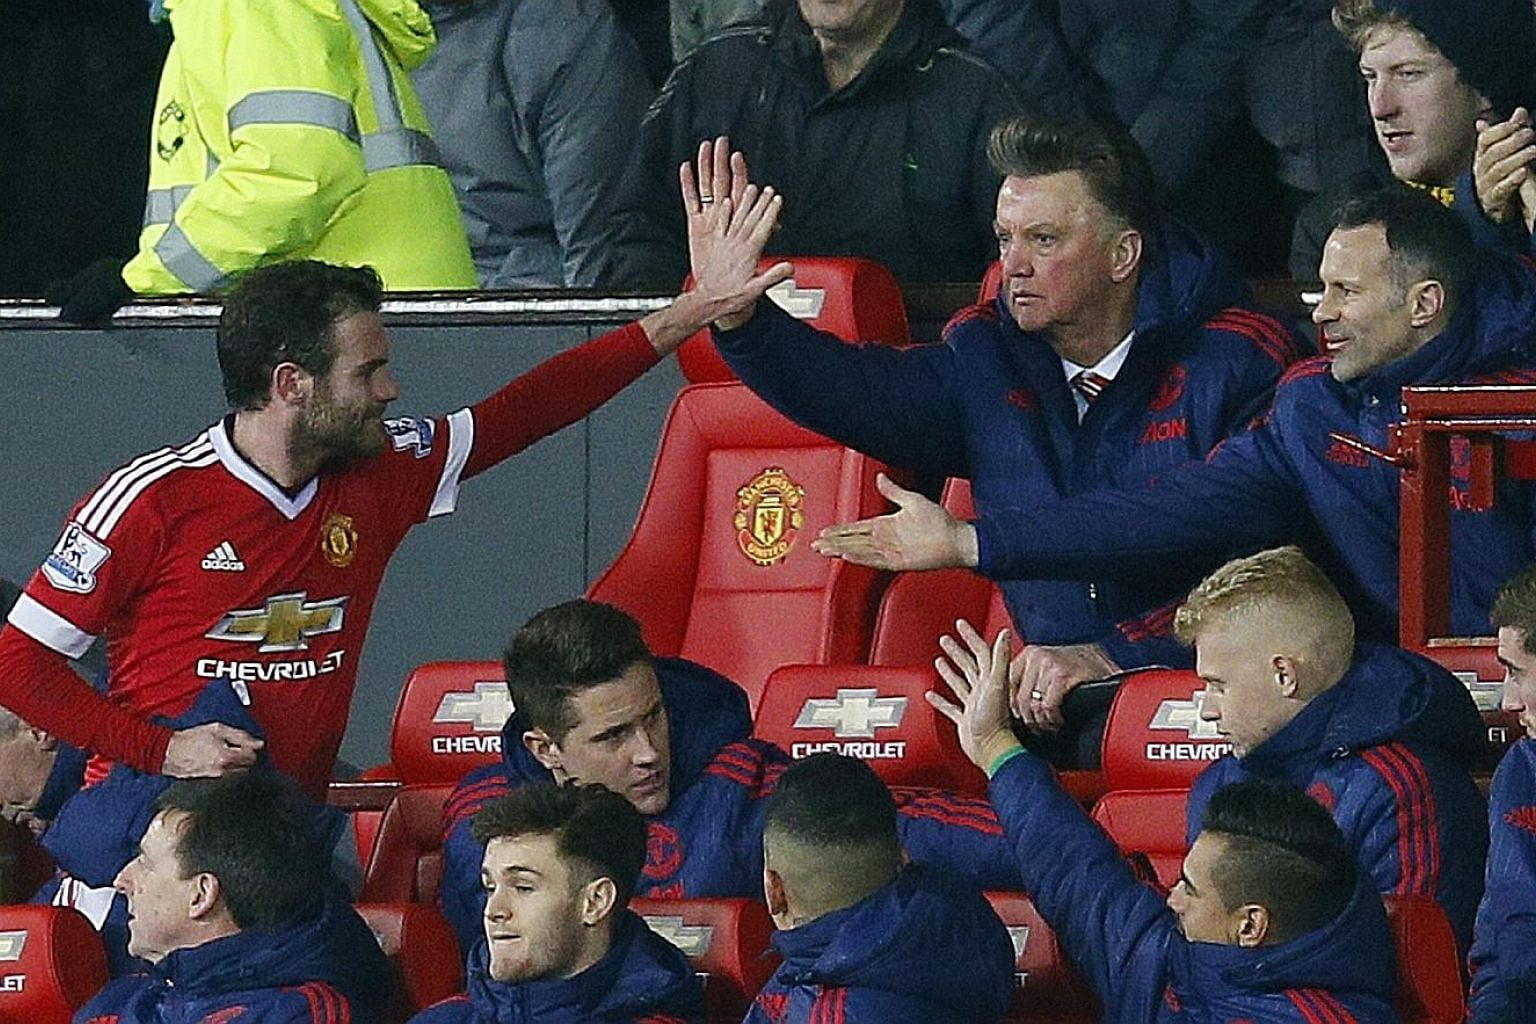 Manchester United's Juan Mata (far left) celebrating with Louis van Gaal and Ryan Giggs after being substituted in the 1-0 win over Watford, where he scored the winner.